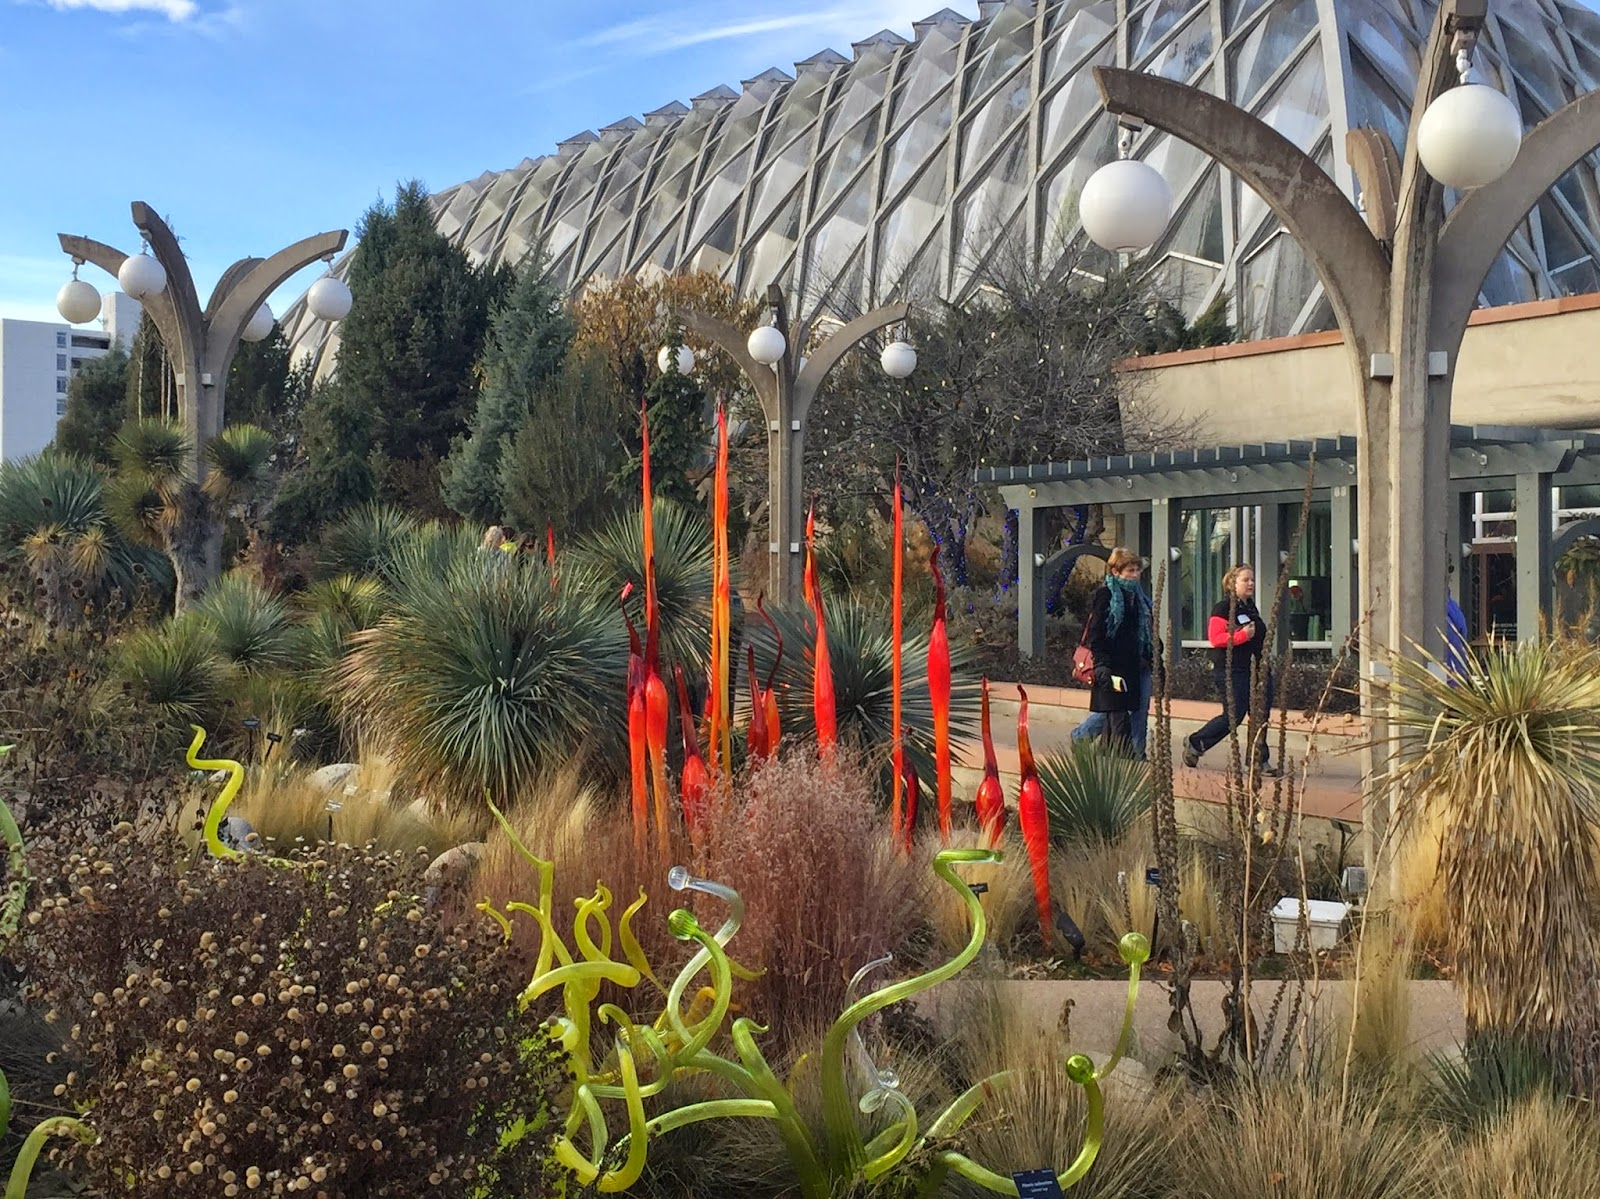 Marvelous Chihulyu0027s Garden Cycle Exhibits Were Originally Located In Glass  Conservatories Of Botanical Gardens, So Some Of The Glass Was Found In The  Conservatory As ...